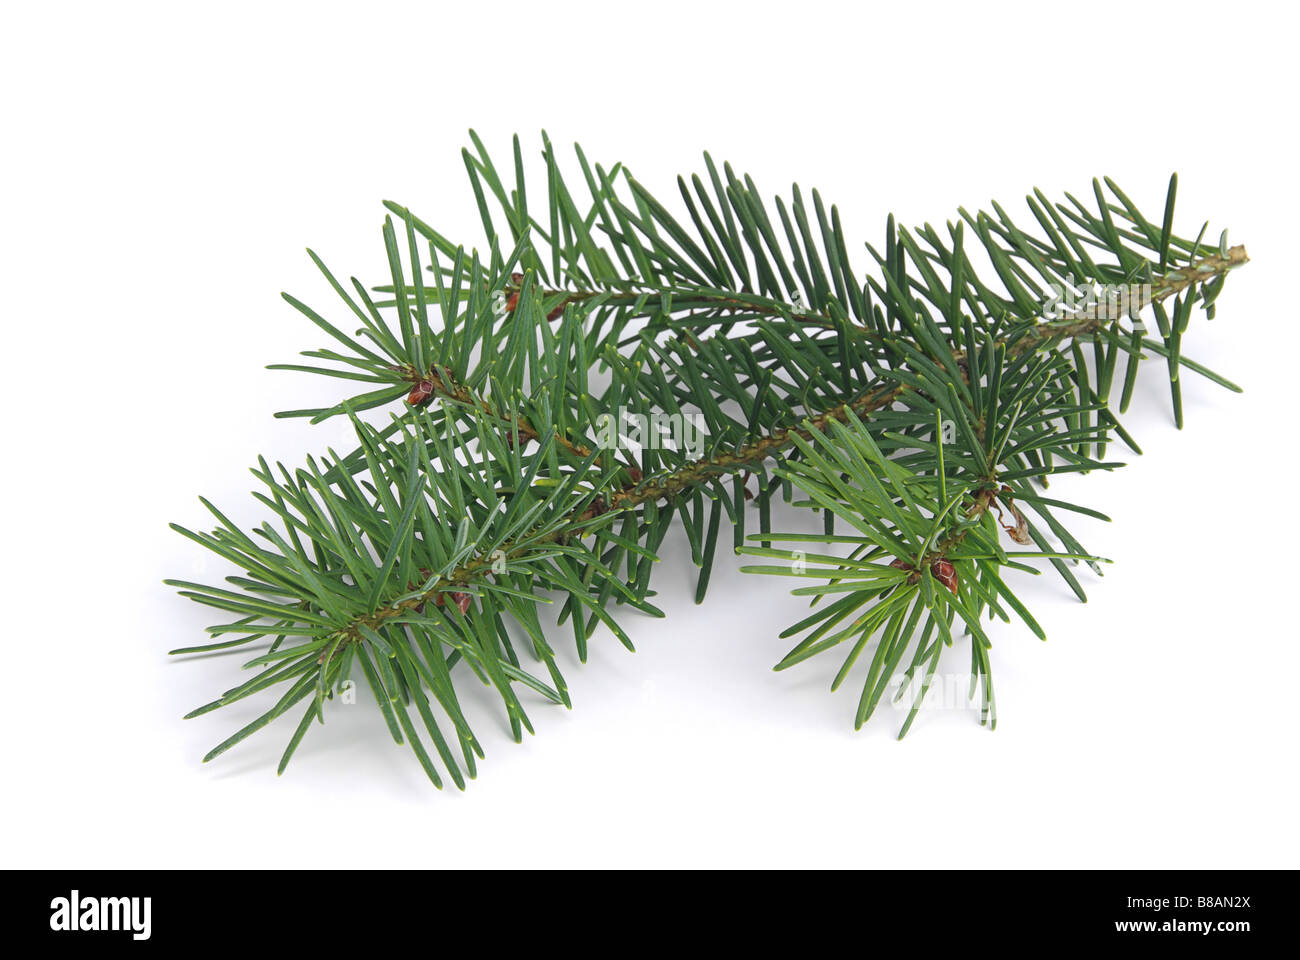 Tannenzweig fir branch 04 - Stock Image